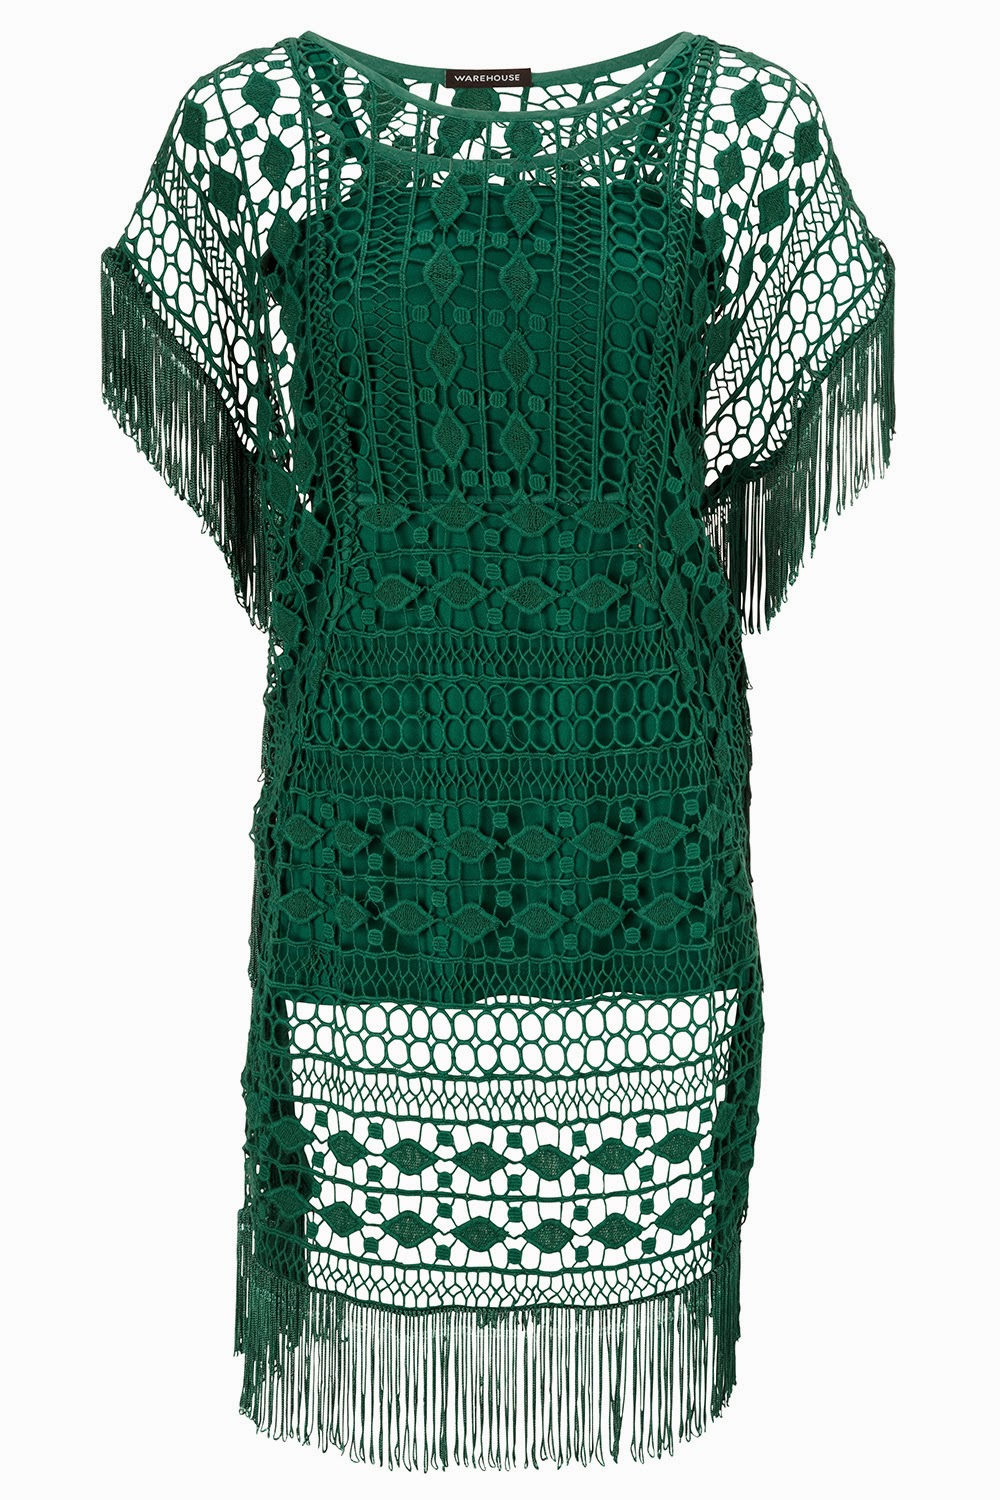 warehouse green crochet dress, green crochet dress, warehouse green fringed dress,